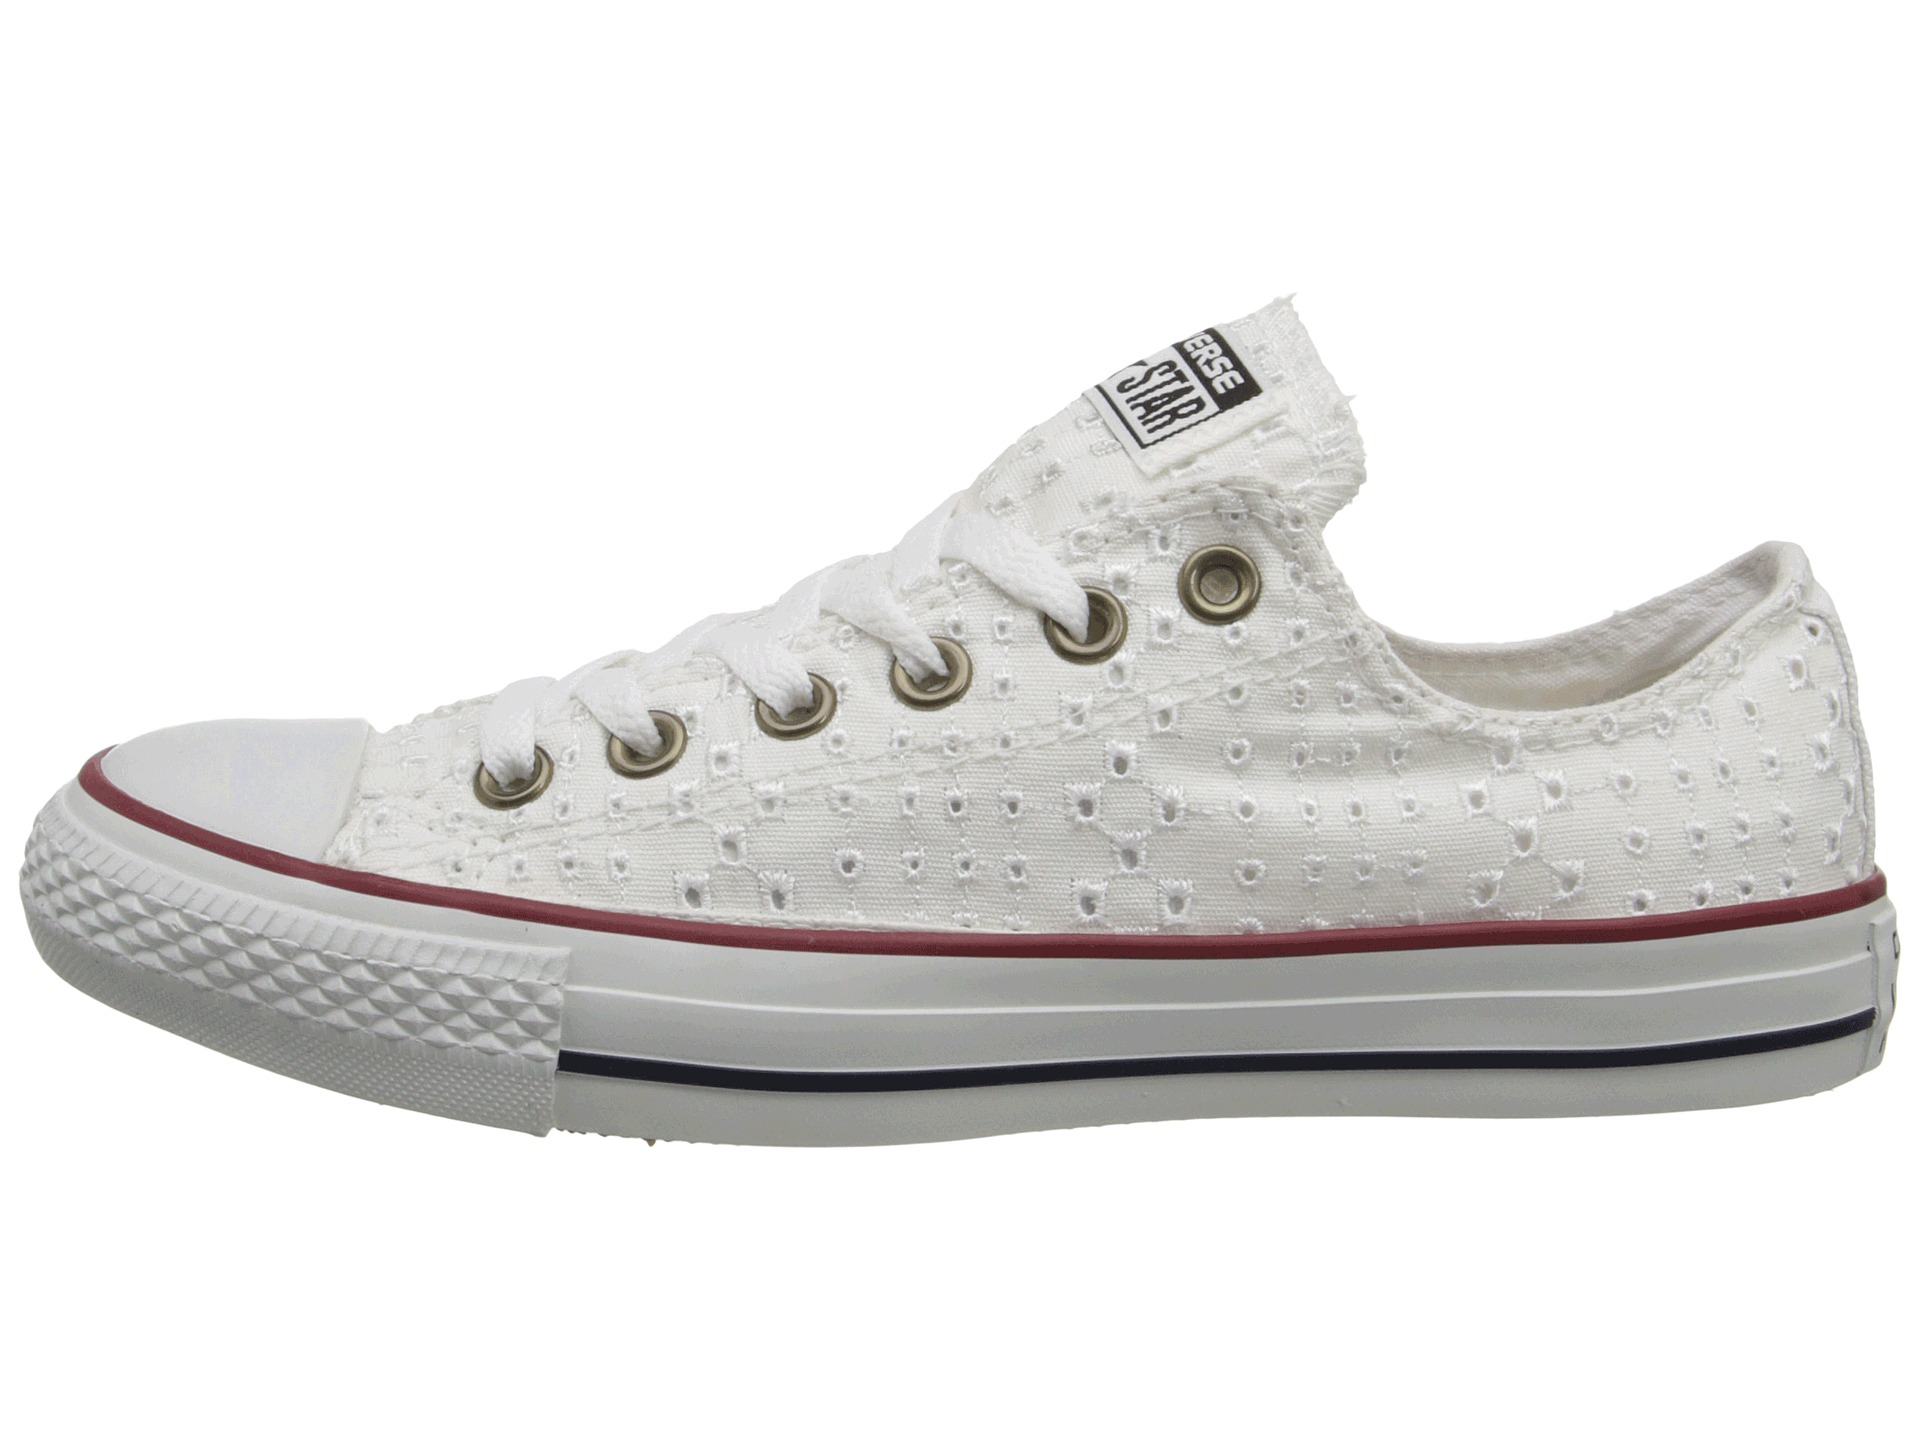 Converse Chuck Taylor All Star Eyelet Cutout Ox in White - Lyst